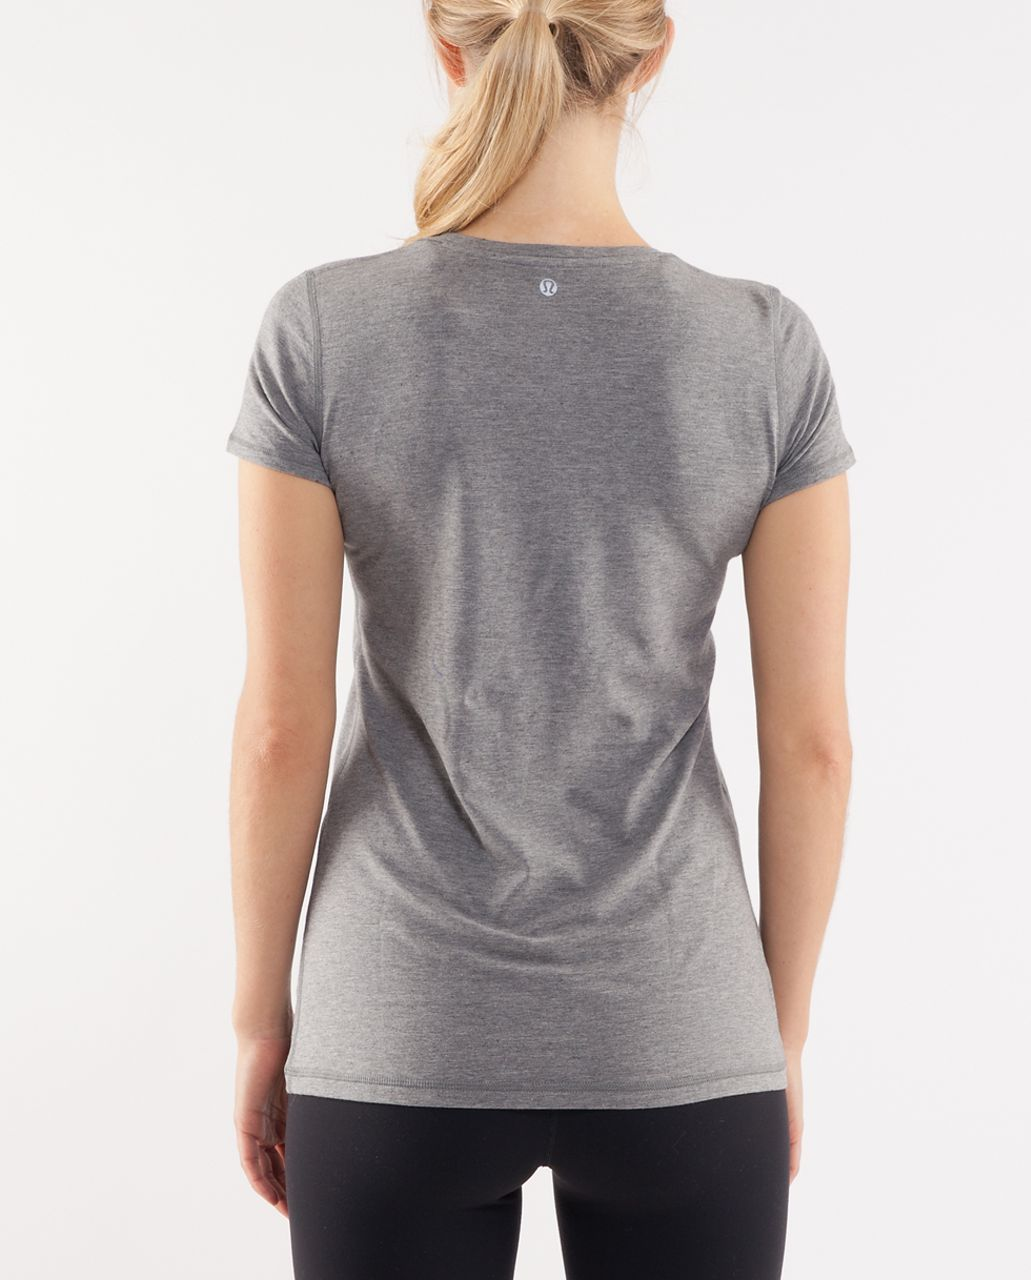 Lululemon Lively Crewneck Tee *Vitasea - Heathered Blurred Grey